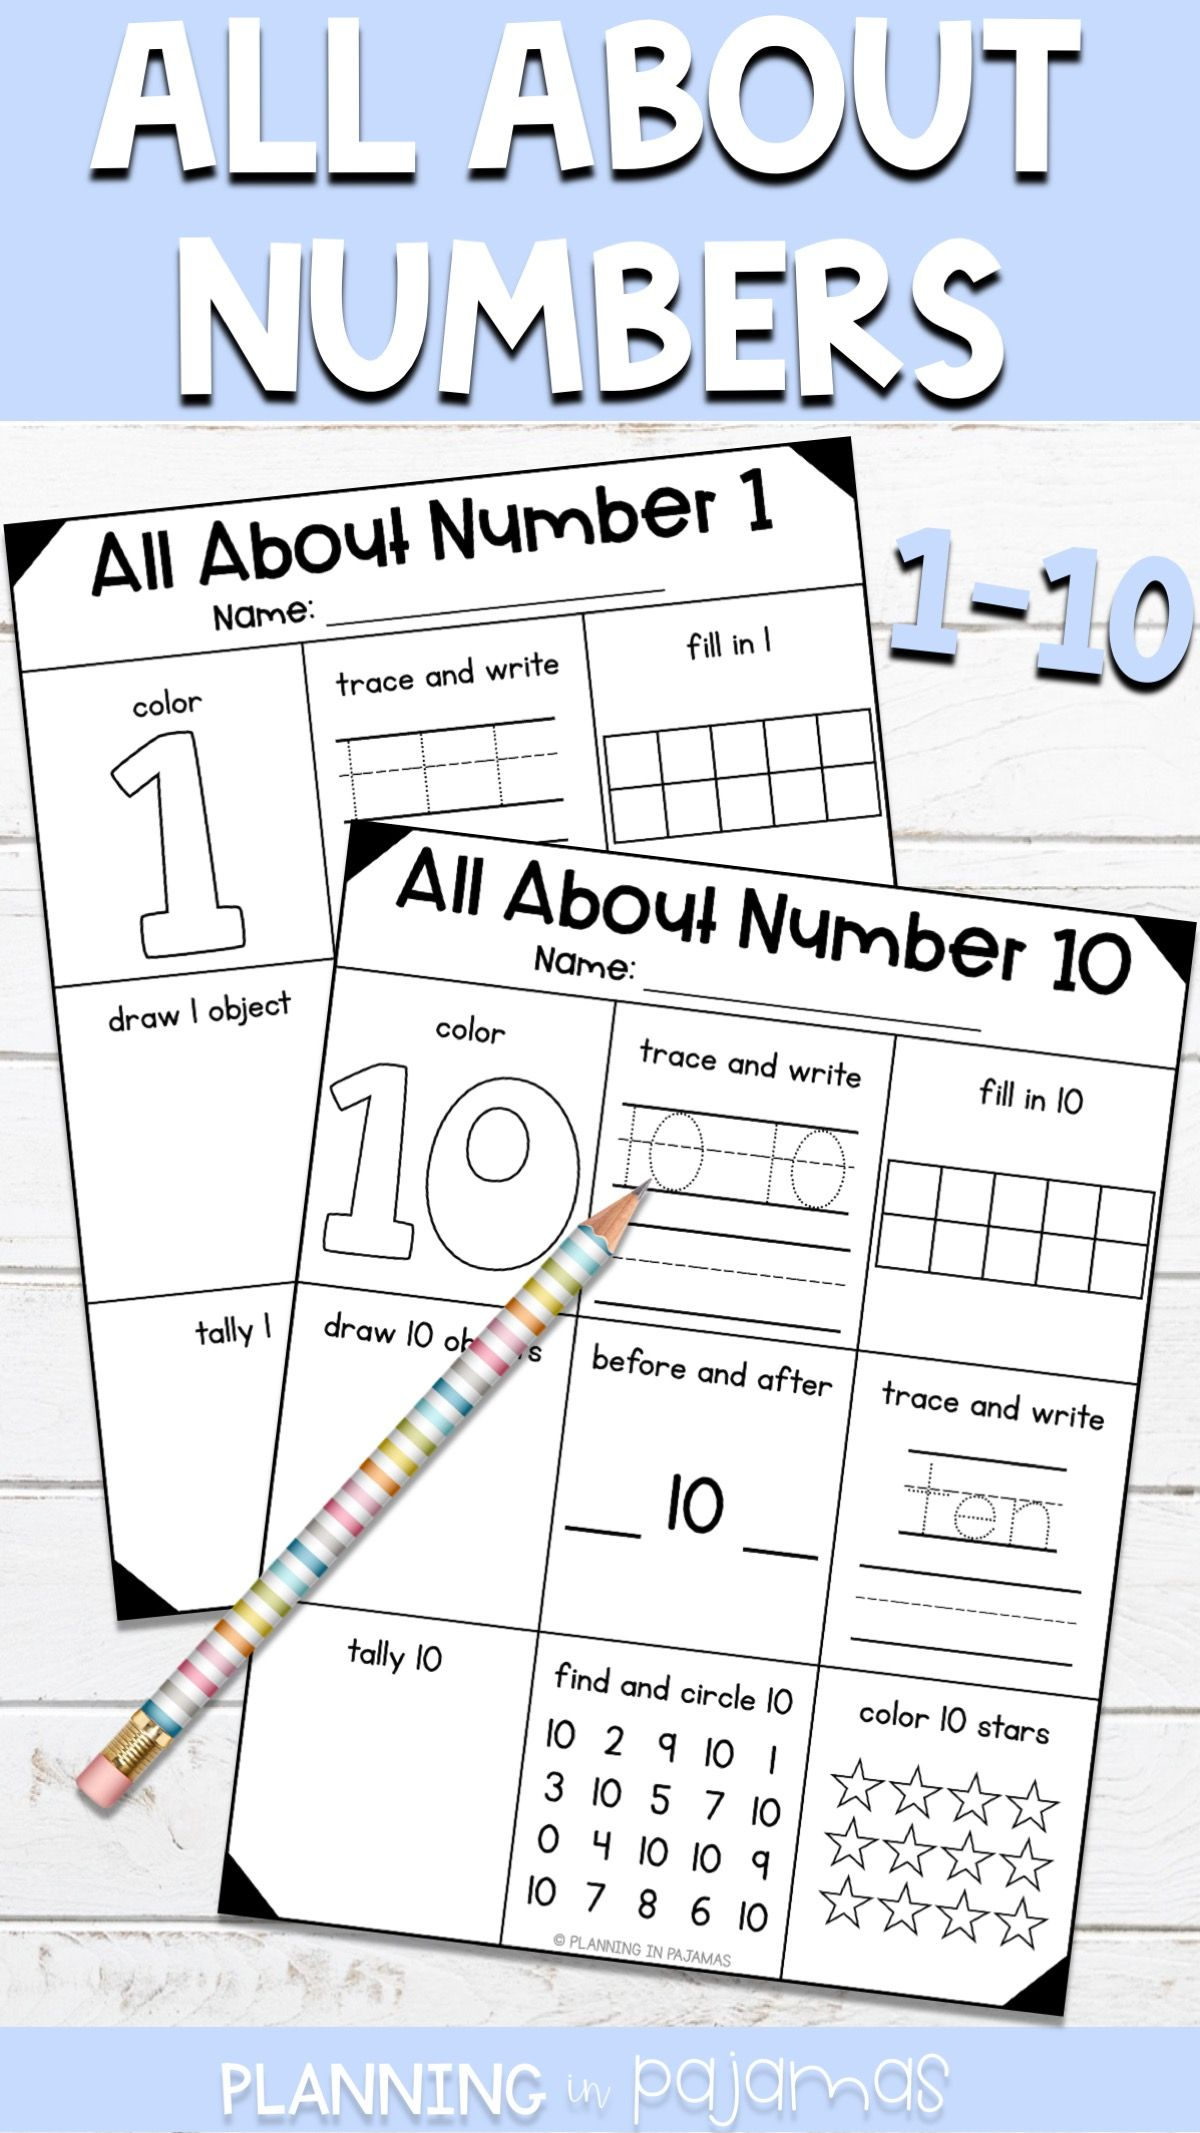 Number Worksheets 1 10 9 Skills Tested On Each Great For Kindergarten Tracing Writing Color Writing Numbers Kindergarten Writing Numbers Kindergarten Math [ 2133 x 1200 Pixel ]